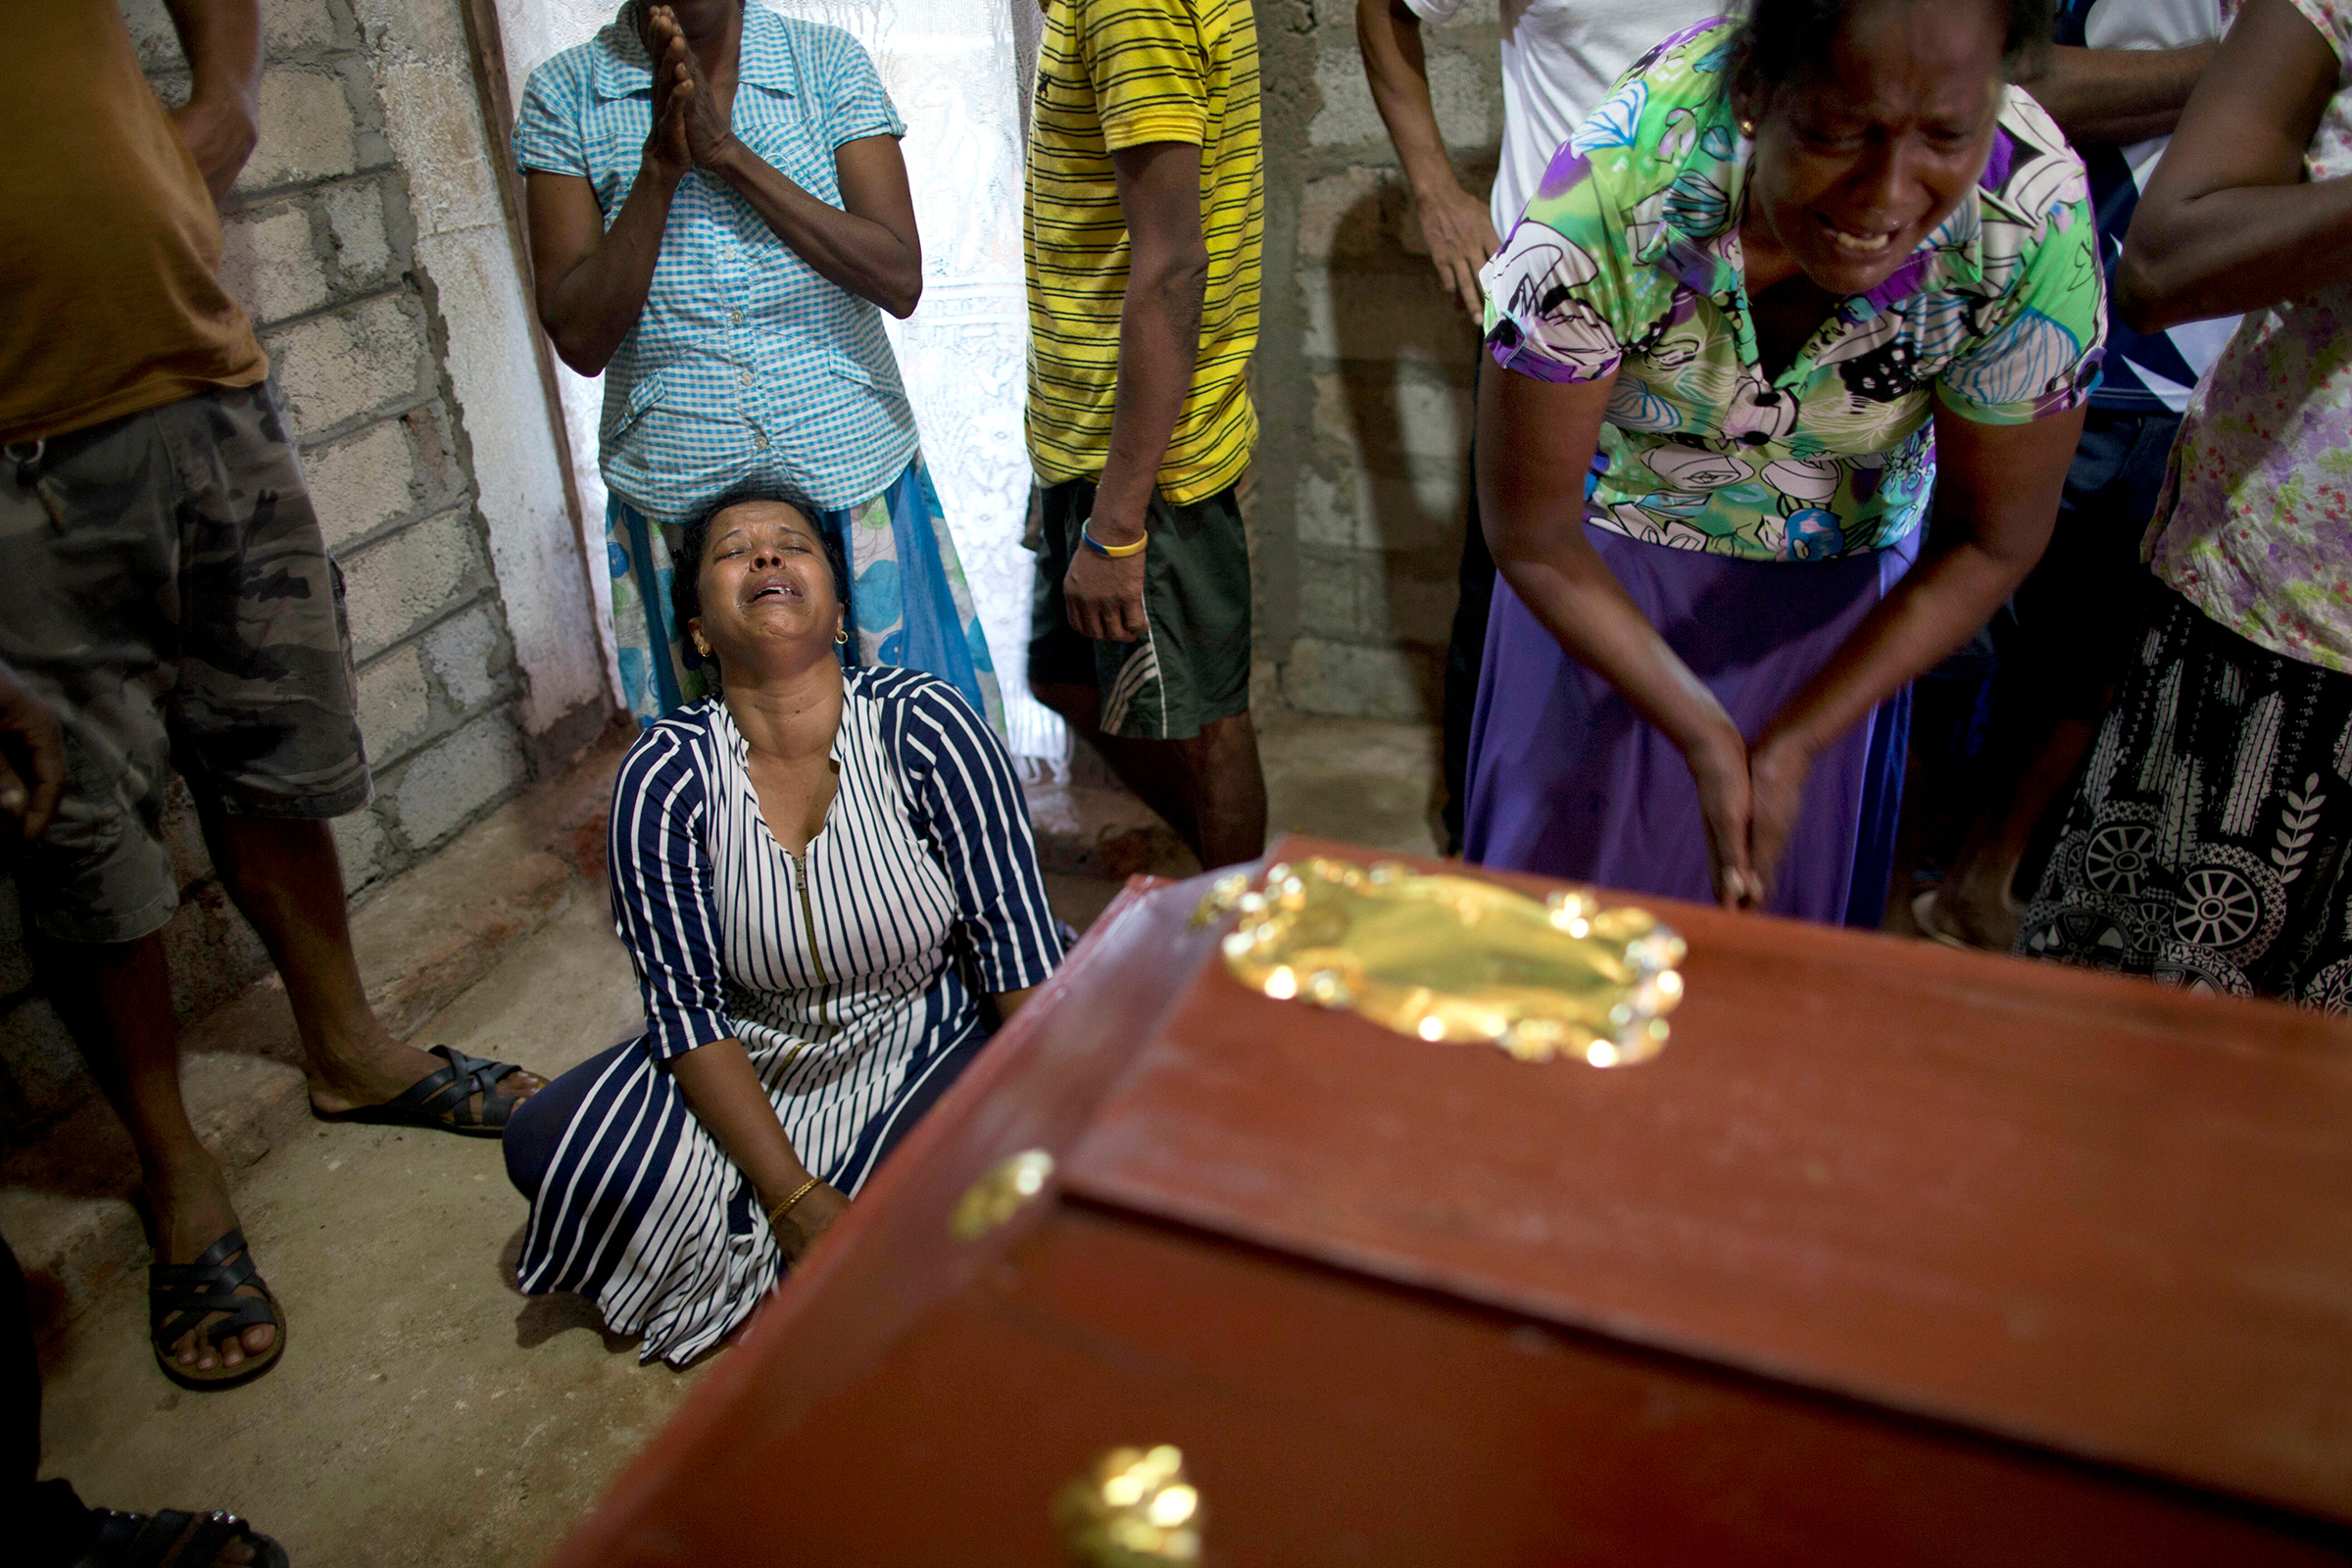 What You Need to Know About Sri Lanka's Easter Bombings (And How You Can Help)